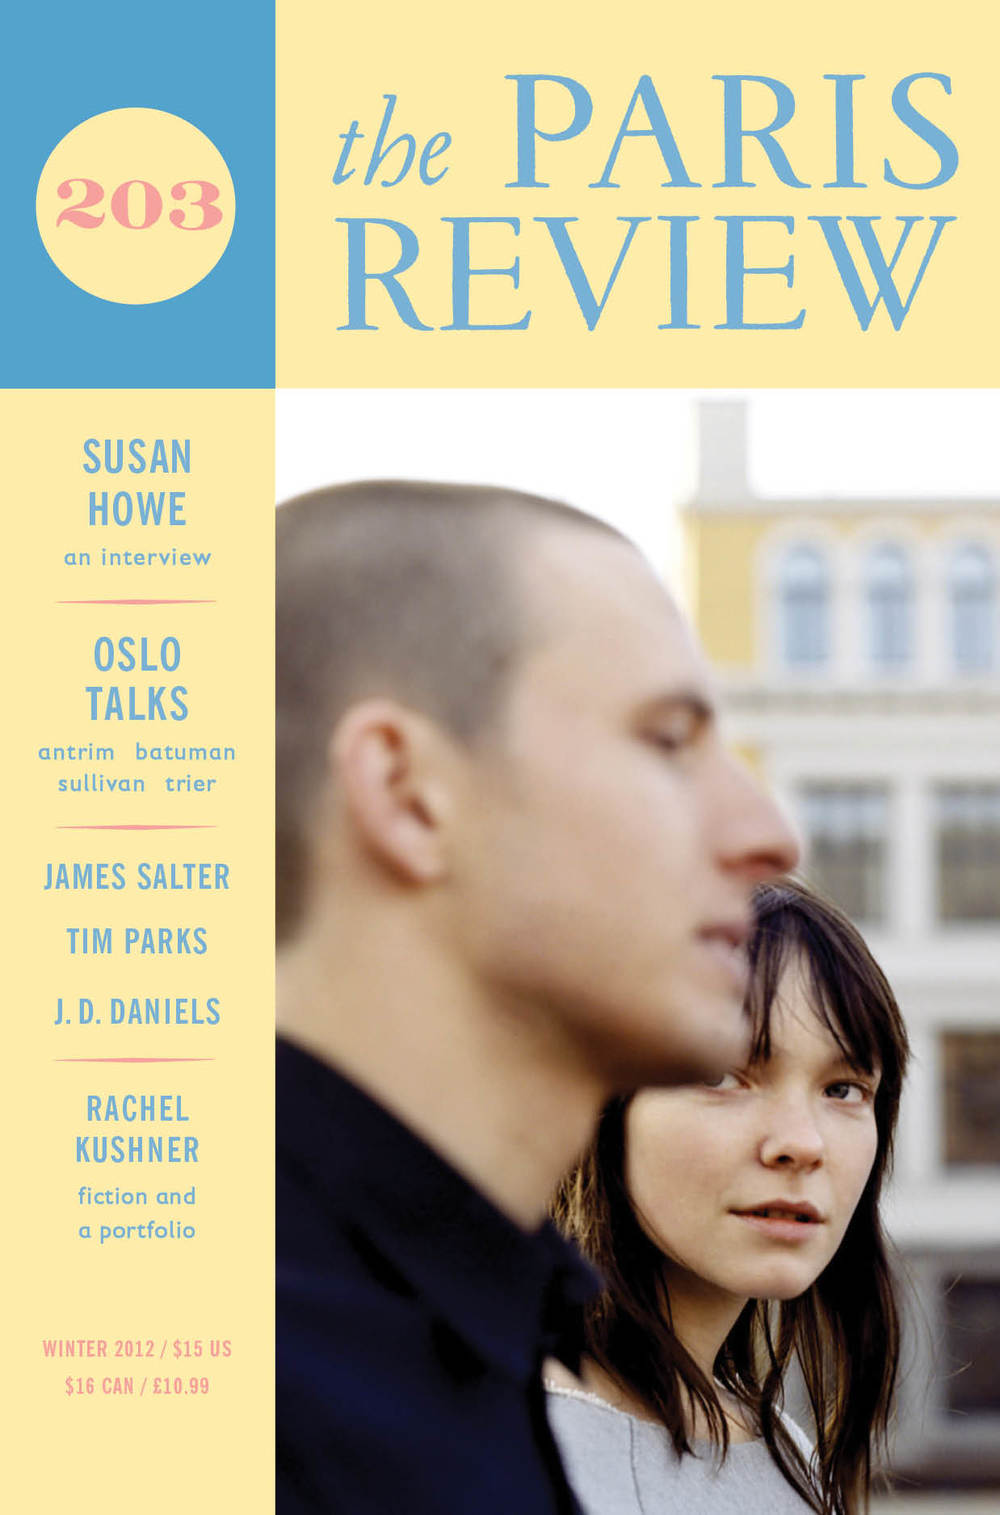 """theparisreview :       Announcing our Winter issue !    Susan Howe on the art of poetry: """"I often think of the space of a page as a stage, with words, letters, syllable characters moving across."""" And discussion excerpts from the  First Annual Norwegian-American Literary Festival , including Donald Antrim, Elif Batuman, Graywolf publisher Fiona McCrae, and Norwegian filmmaker Joachim Trier.   New fiction from  James Salter ,  Rachel Kushner ,  Sarah Frisch ,  Tim Parks ,  Peter Orner , and the winner of the  NPR Three-Minute Fiction Contest , and an essay by J.D. Daniels .   Poems by Ben Lerner, Linda Pastan, Devin Johnston, Yasiin Bey, Geoffrey Hill, Regan Good,  Joshua Mehigan , and Steven Cramer. A  portfolio of images  that inspired Rachel Kushner's novel The Flamethrowers .    Subscribe now !     Really into this,   obviously  . (You haven't seen   Reprise  ? It's streaming online.)"""